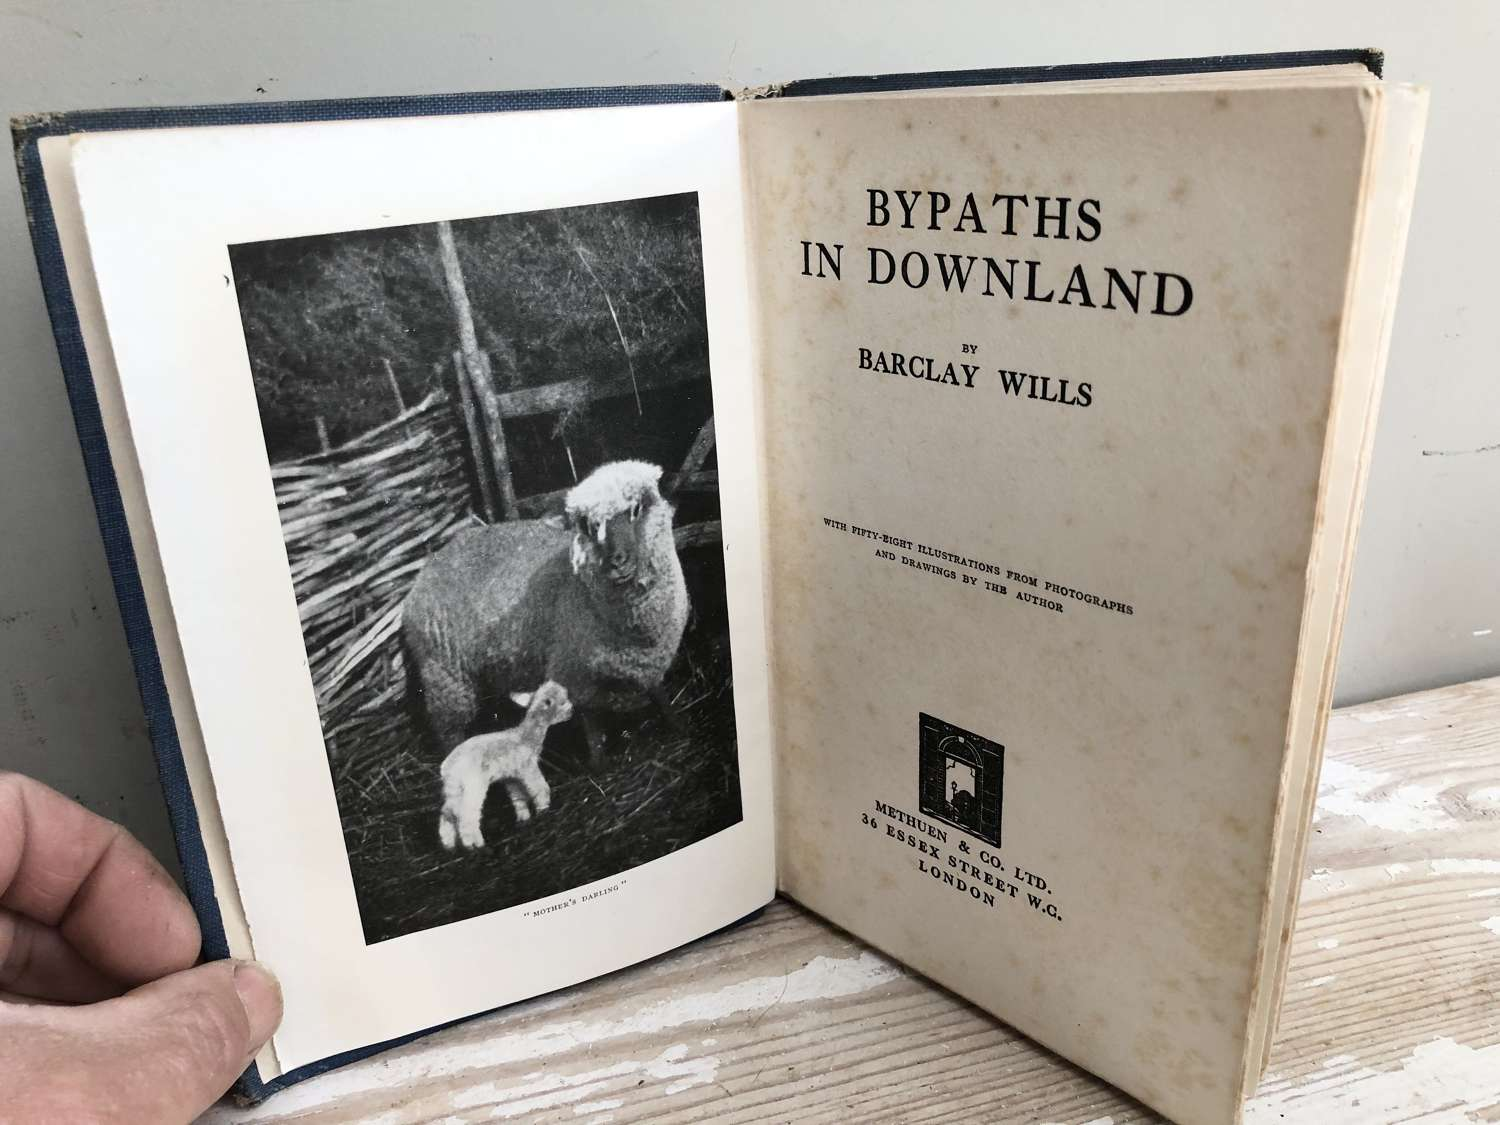 Bypaths in Downland by Barclay Wills